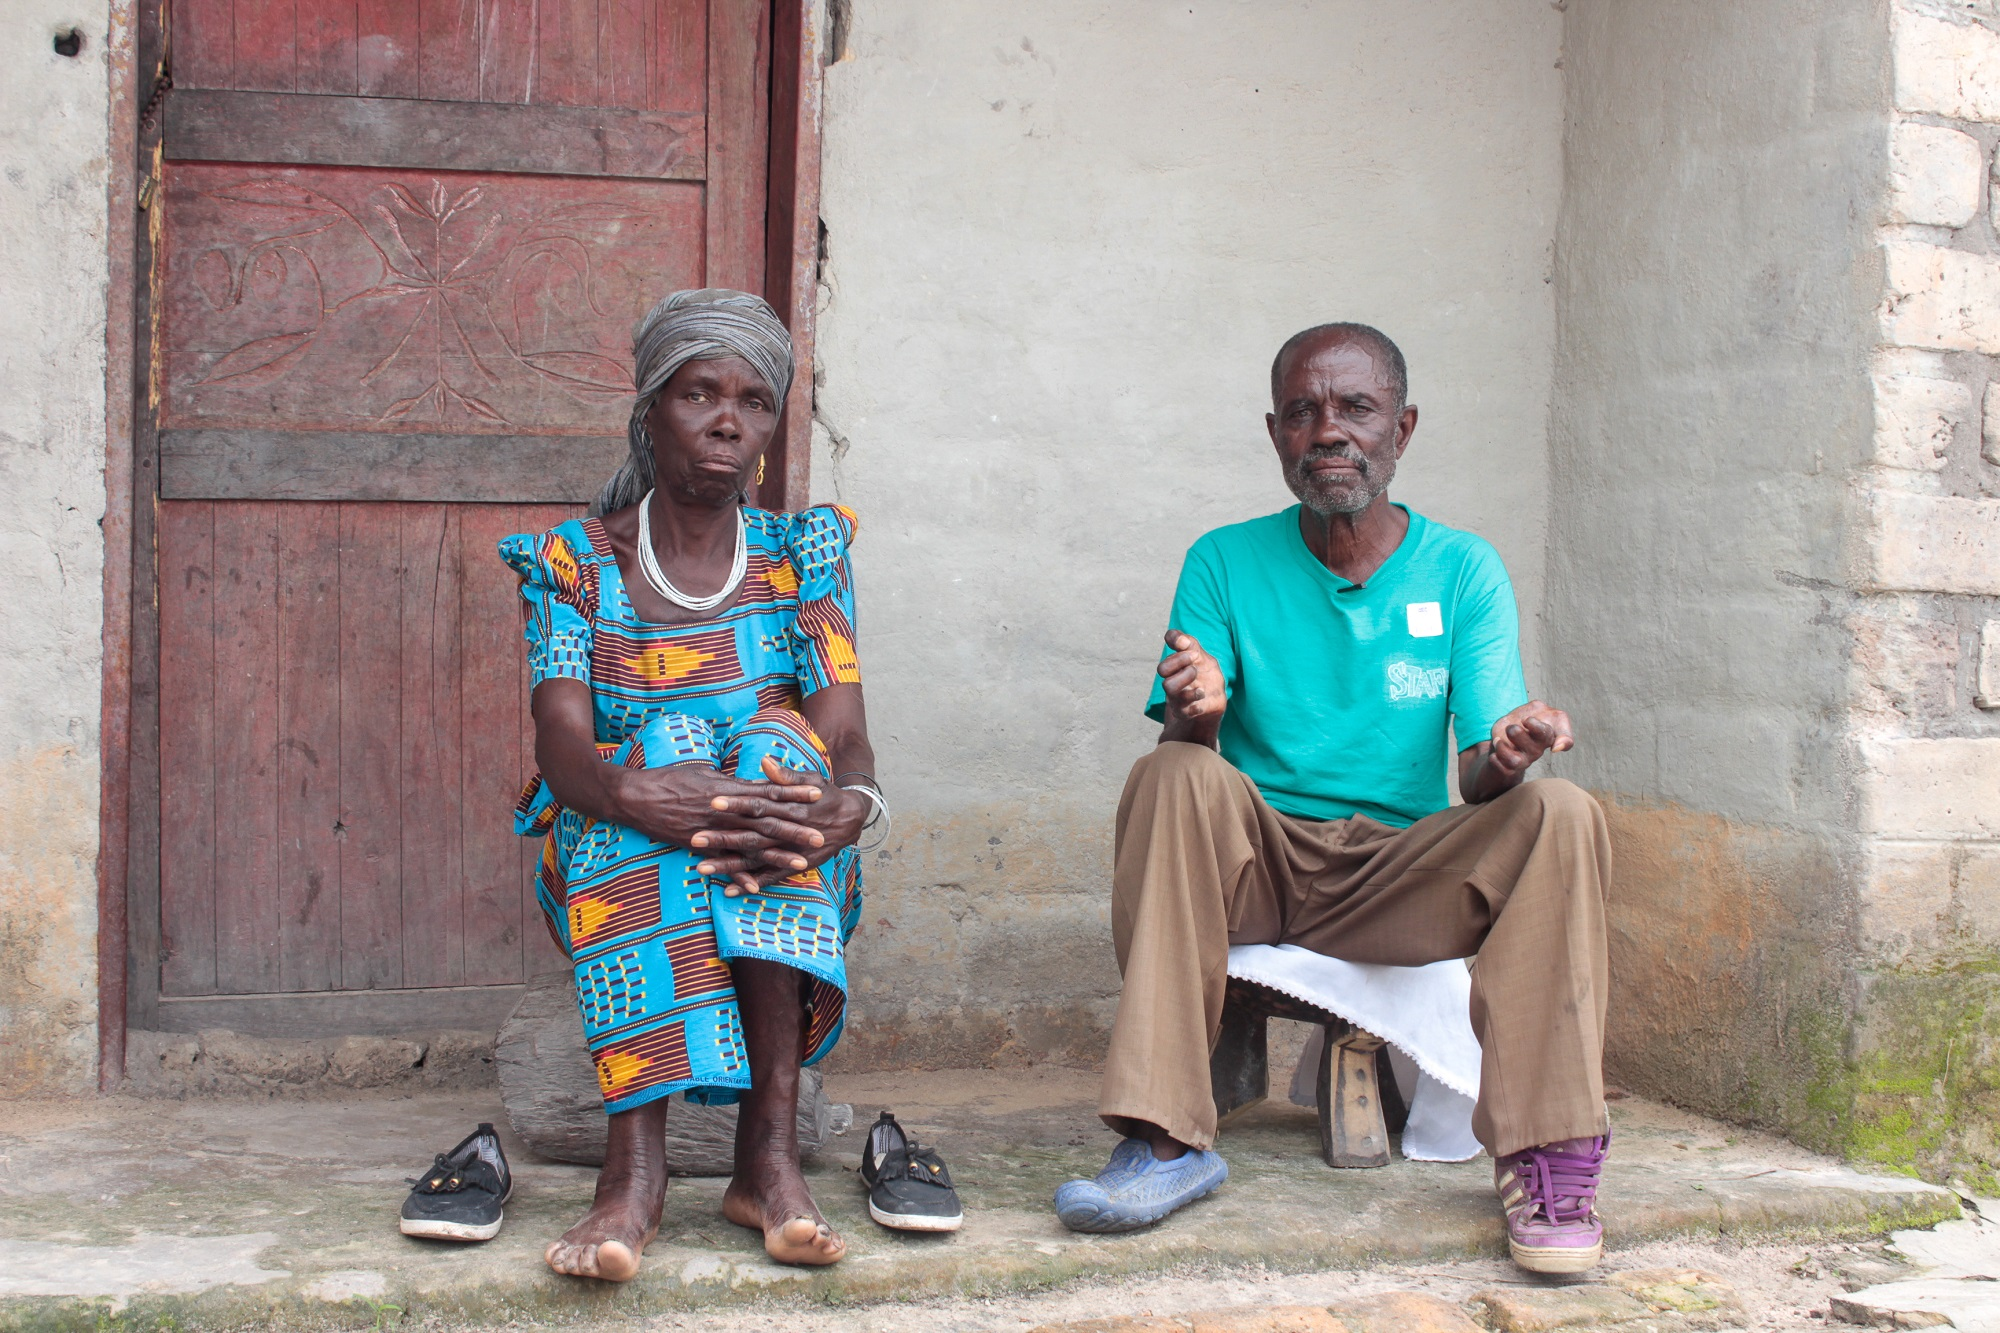 Stephen Kampapa village headman and his wife Apwina kampapa. sitting outside their home they were among the first people to be relocated here in 1988